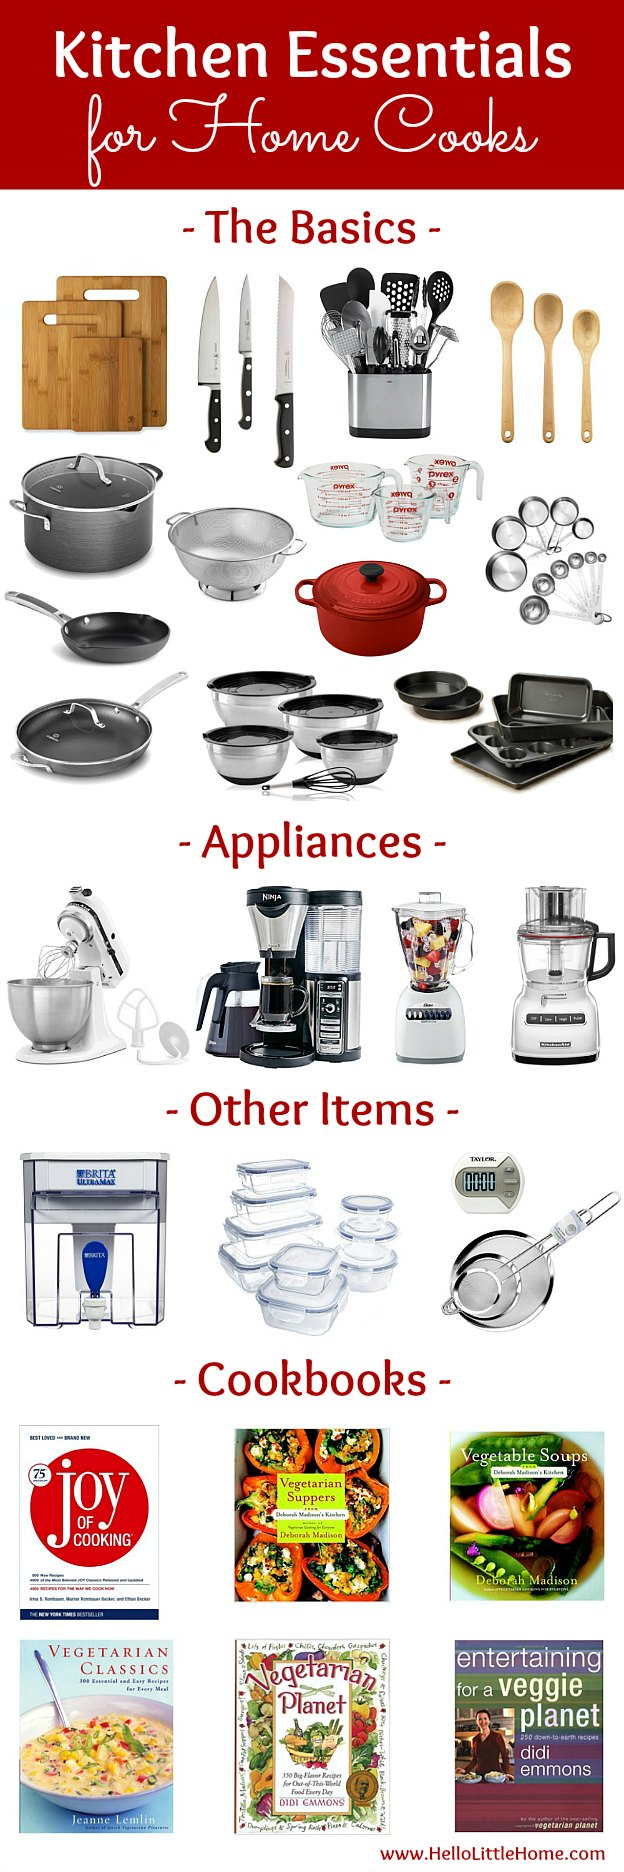 High Quality Kitchen Essentials List For Home Cooks! From Basics To Fun Gadgets, This Kitchen  Essentials